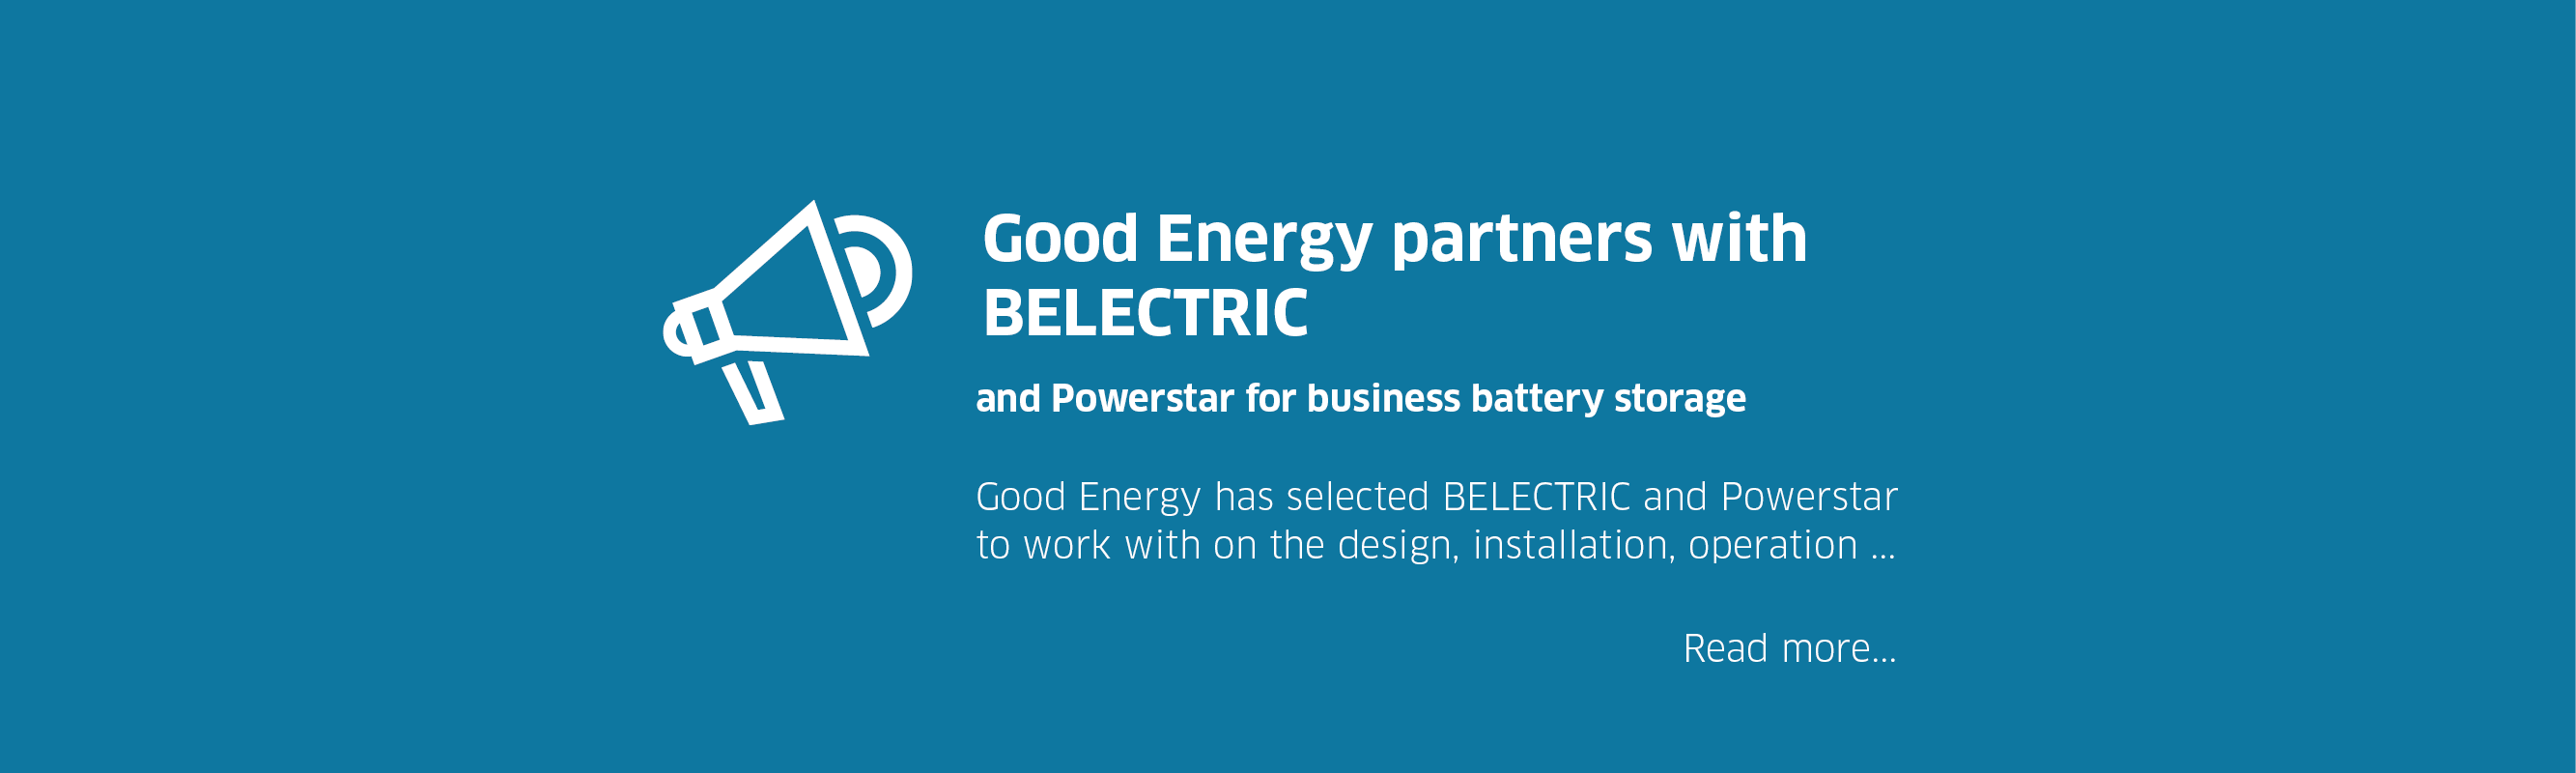 Good Energy partners with BELECTRIC